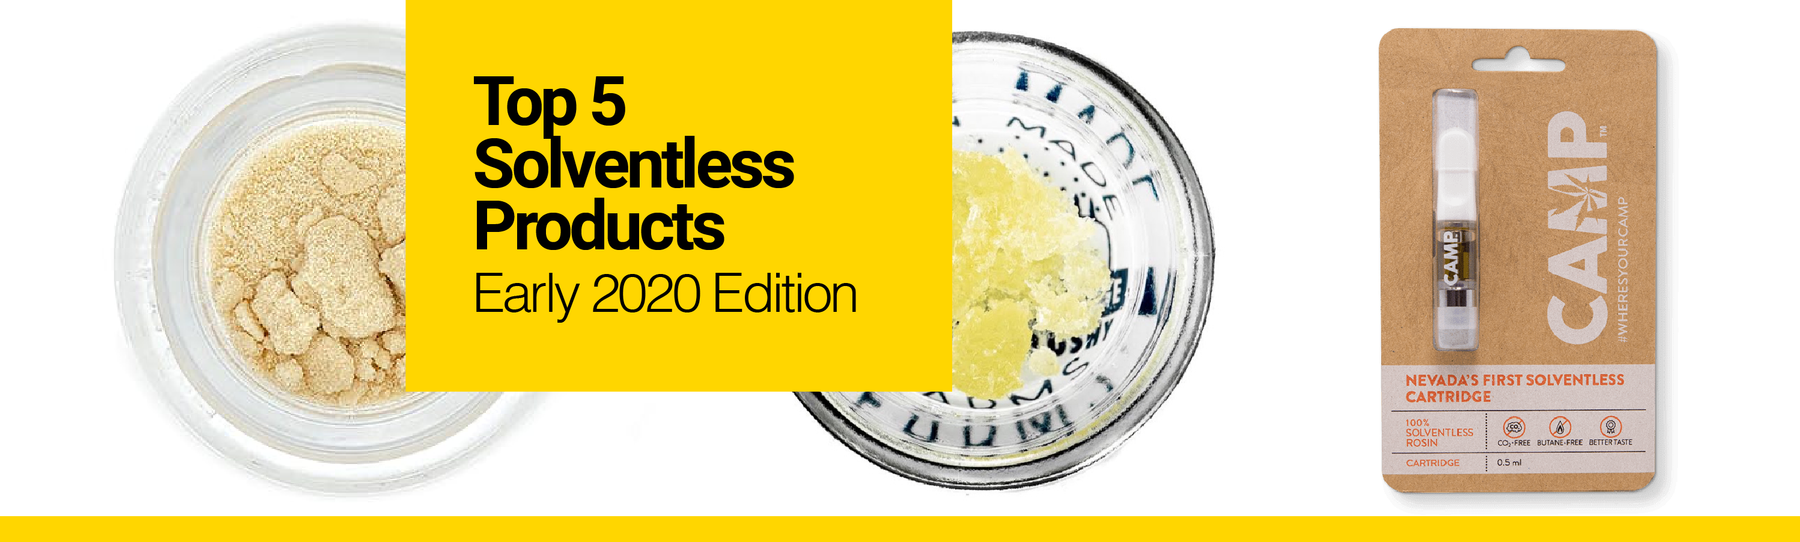 Top 5 Solventless Products We're Excited About (Early 2020 Edition)